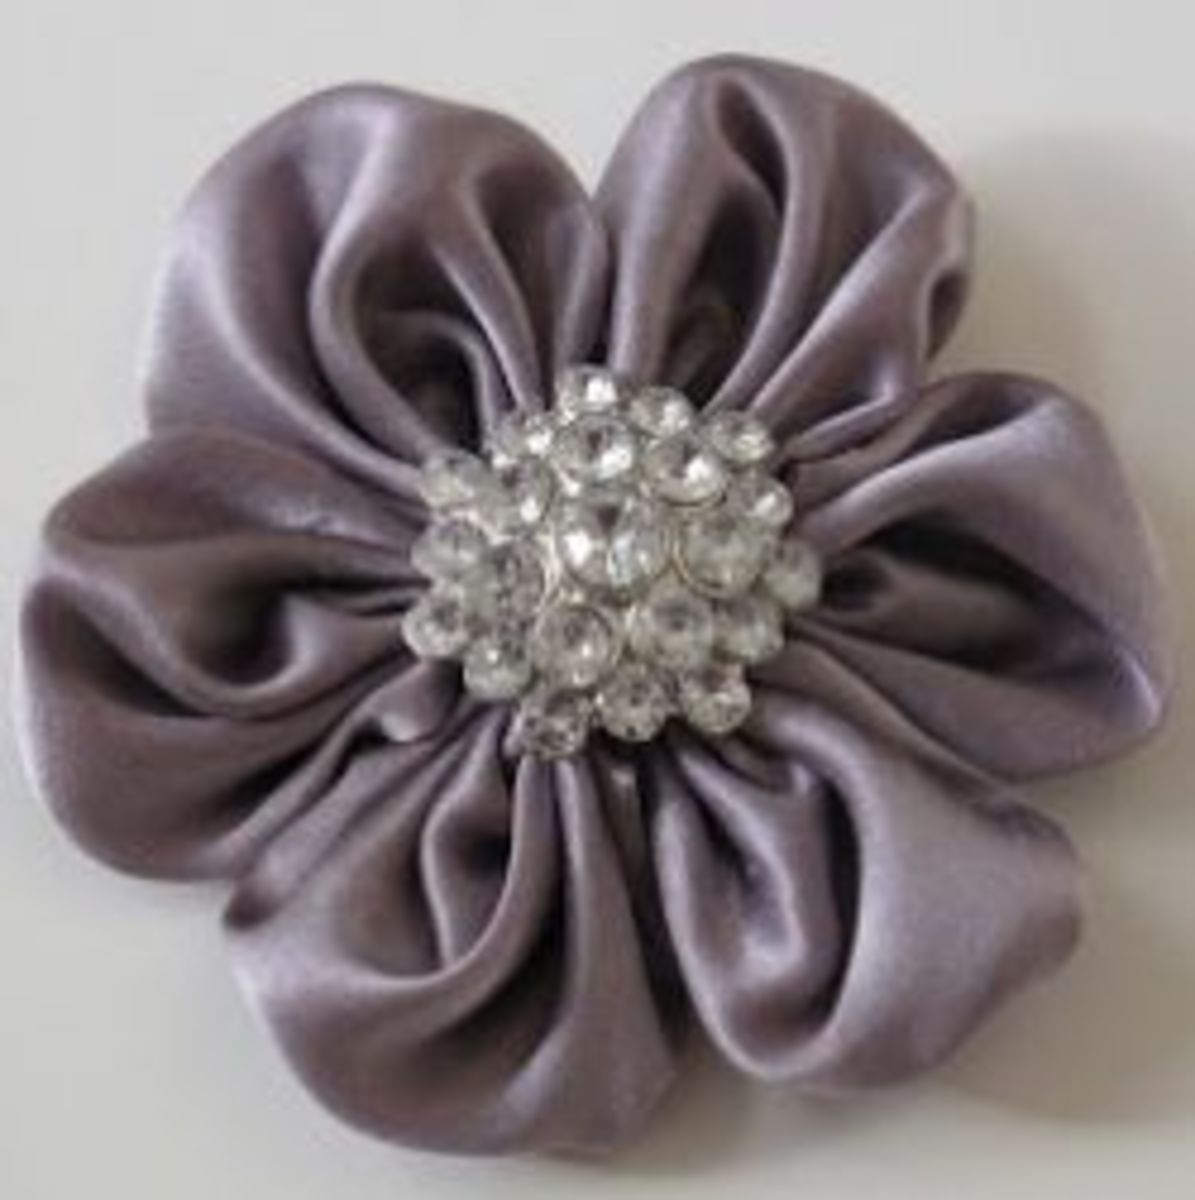 A Girl in Paradise shares a tutorial for the Shimmery Flower. Don't stop with just one! You'll want a whole bouquet of these flowers for every project!